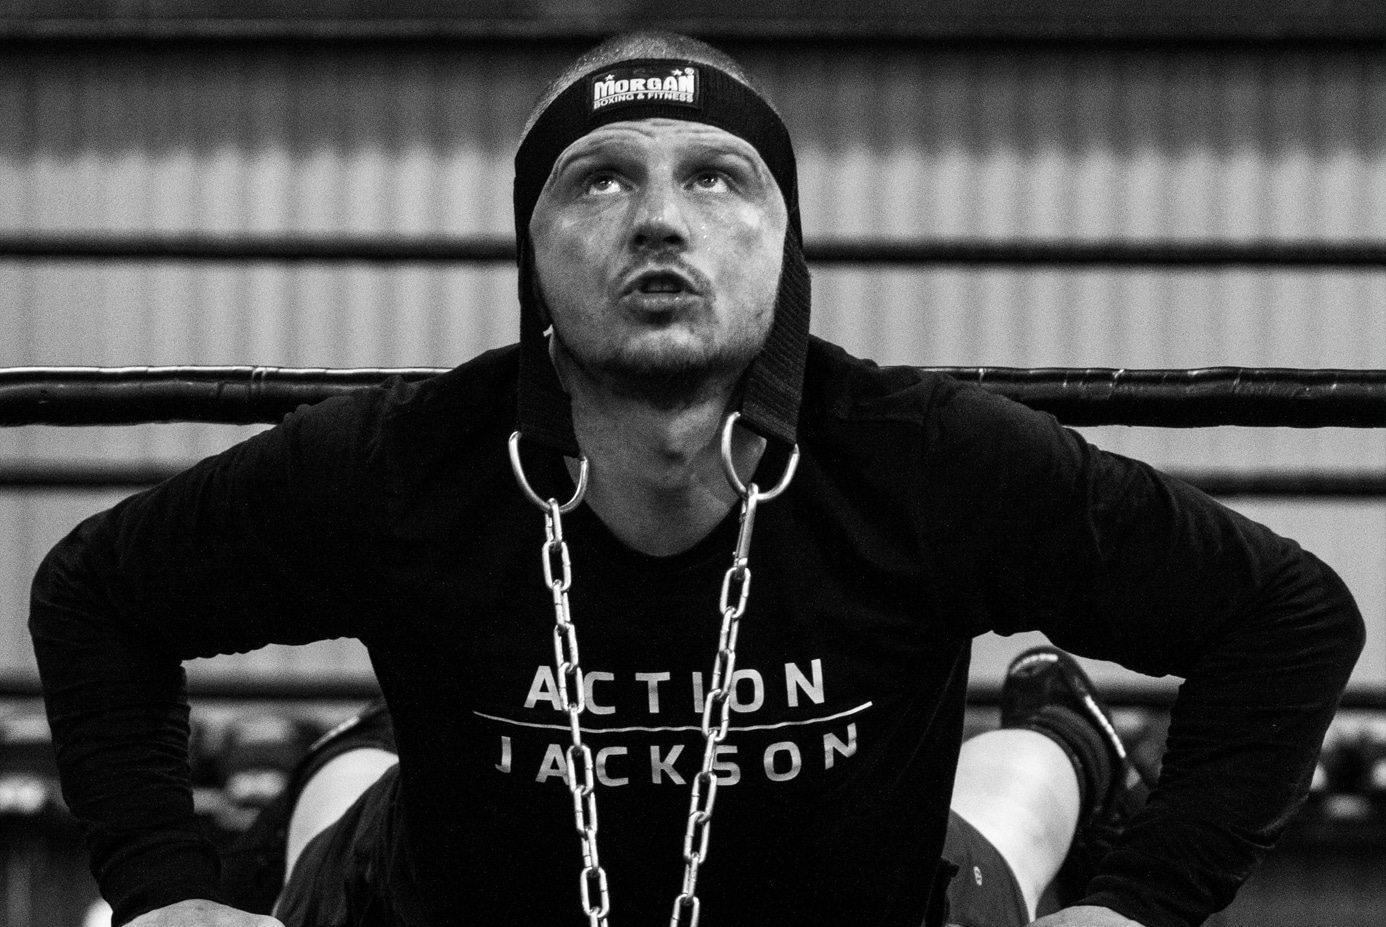 Luke Jackson discusses upbringing, life without boxing and more